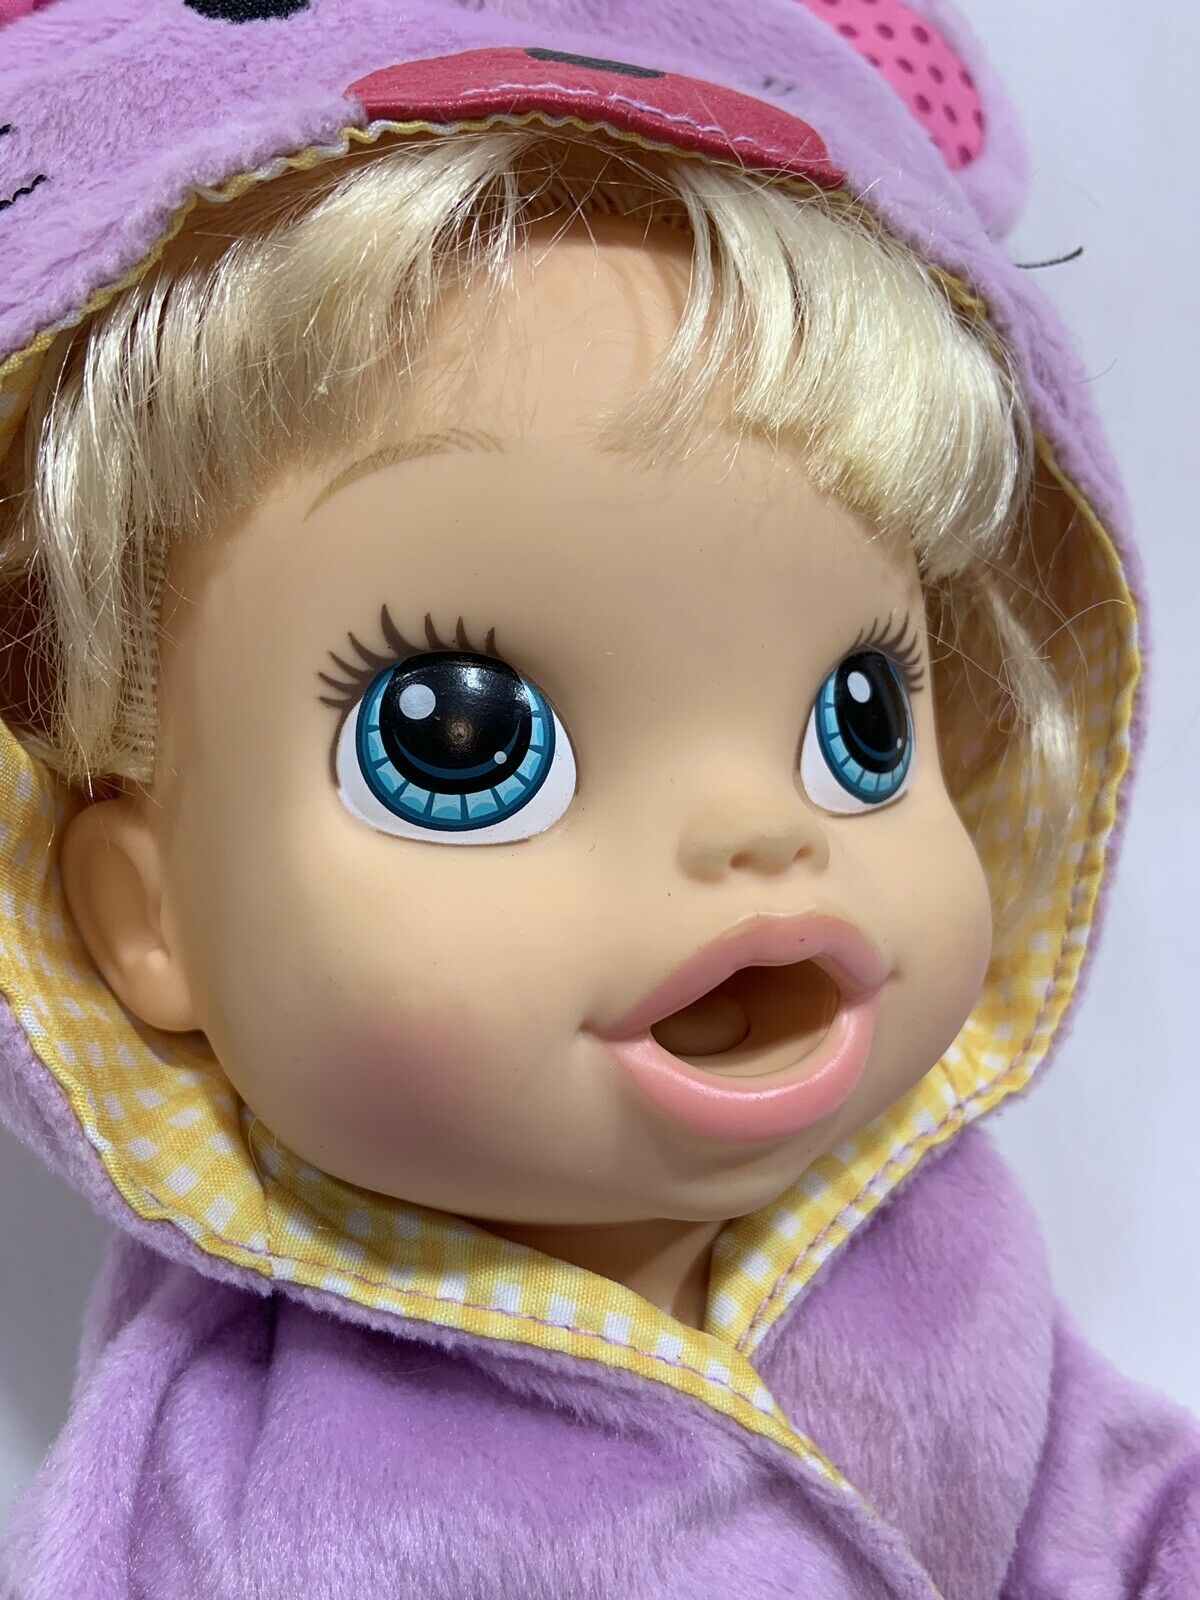 Baby Alive Hasbro 2013 Blonde Doll Interactive Talking Bilingual English Spanish image 3